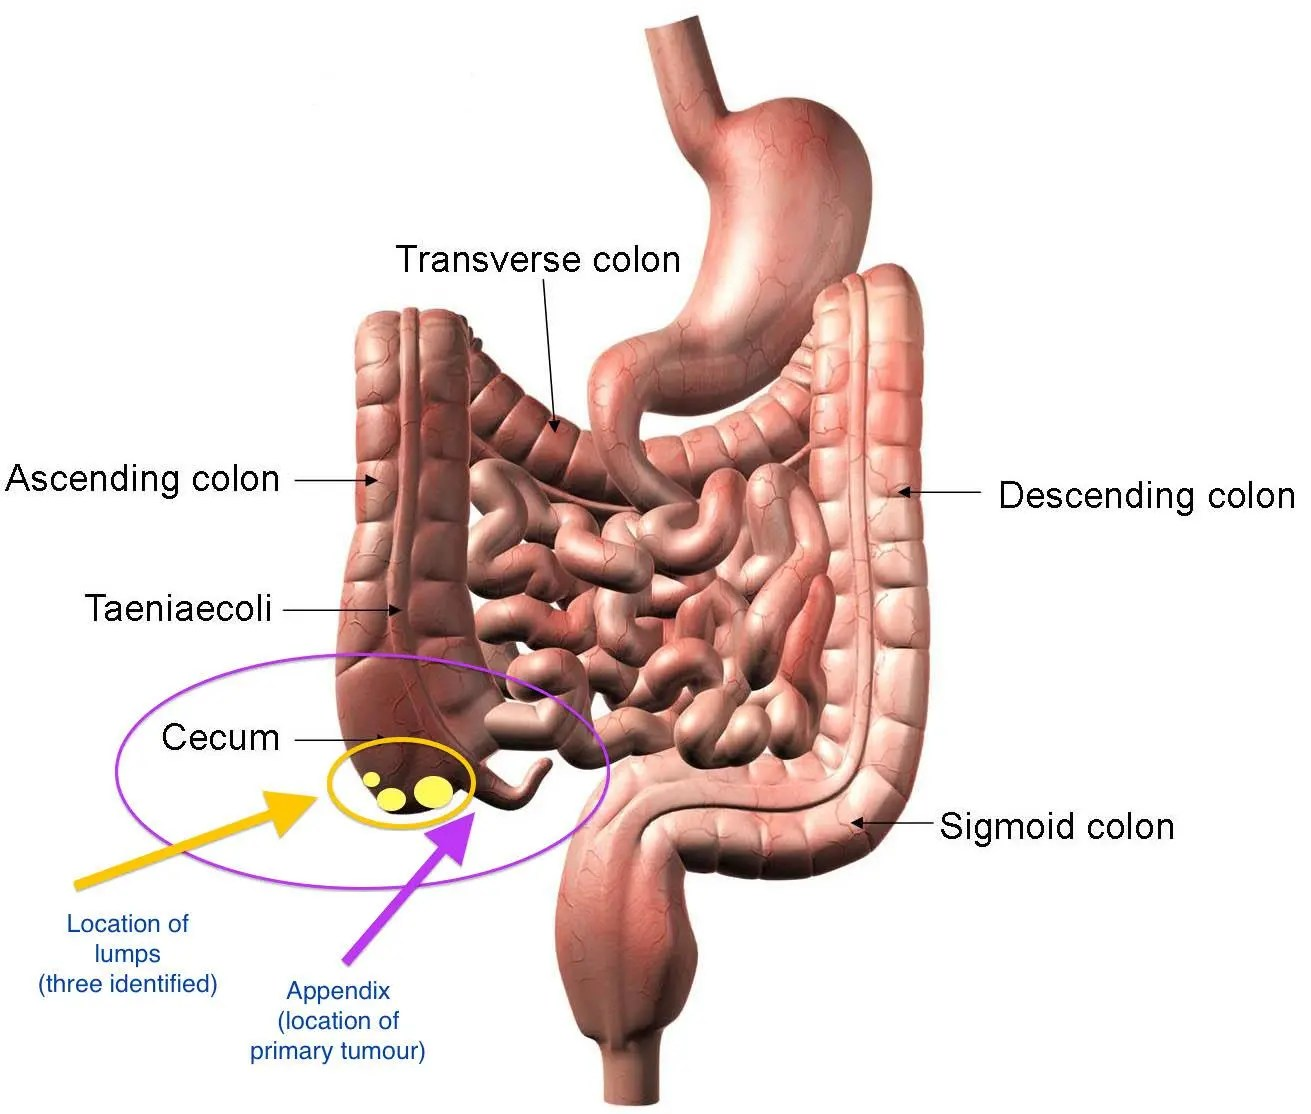 herbal treatment to cure appendicitis - ayurveda and yoga, Cephalic Vein